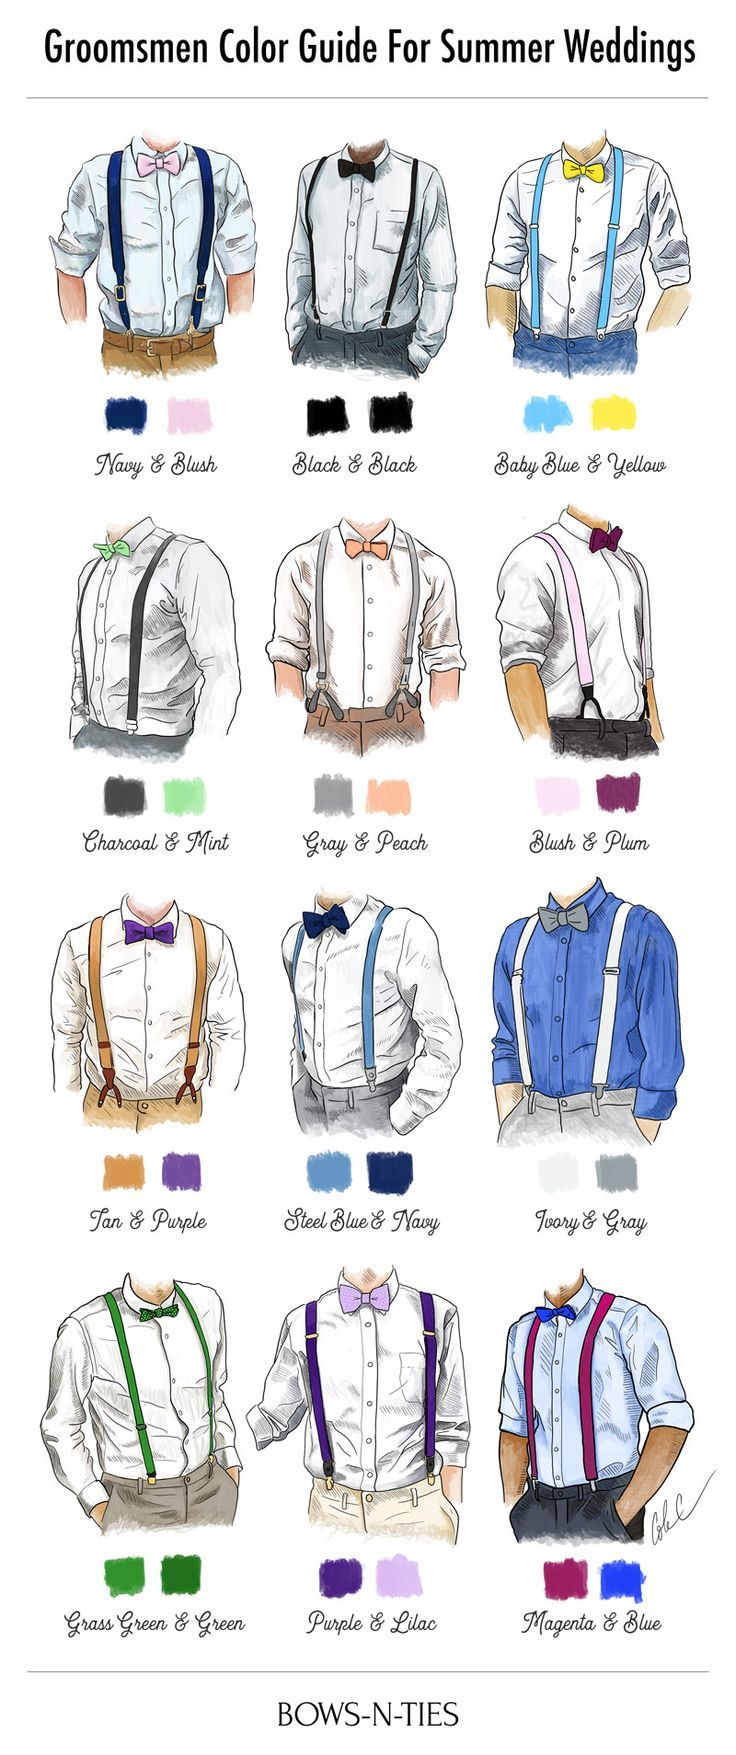 Groomsmen color guide for summer weddings. How to pair suspenders and bow ties